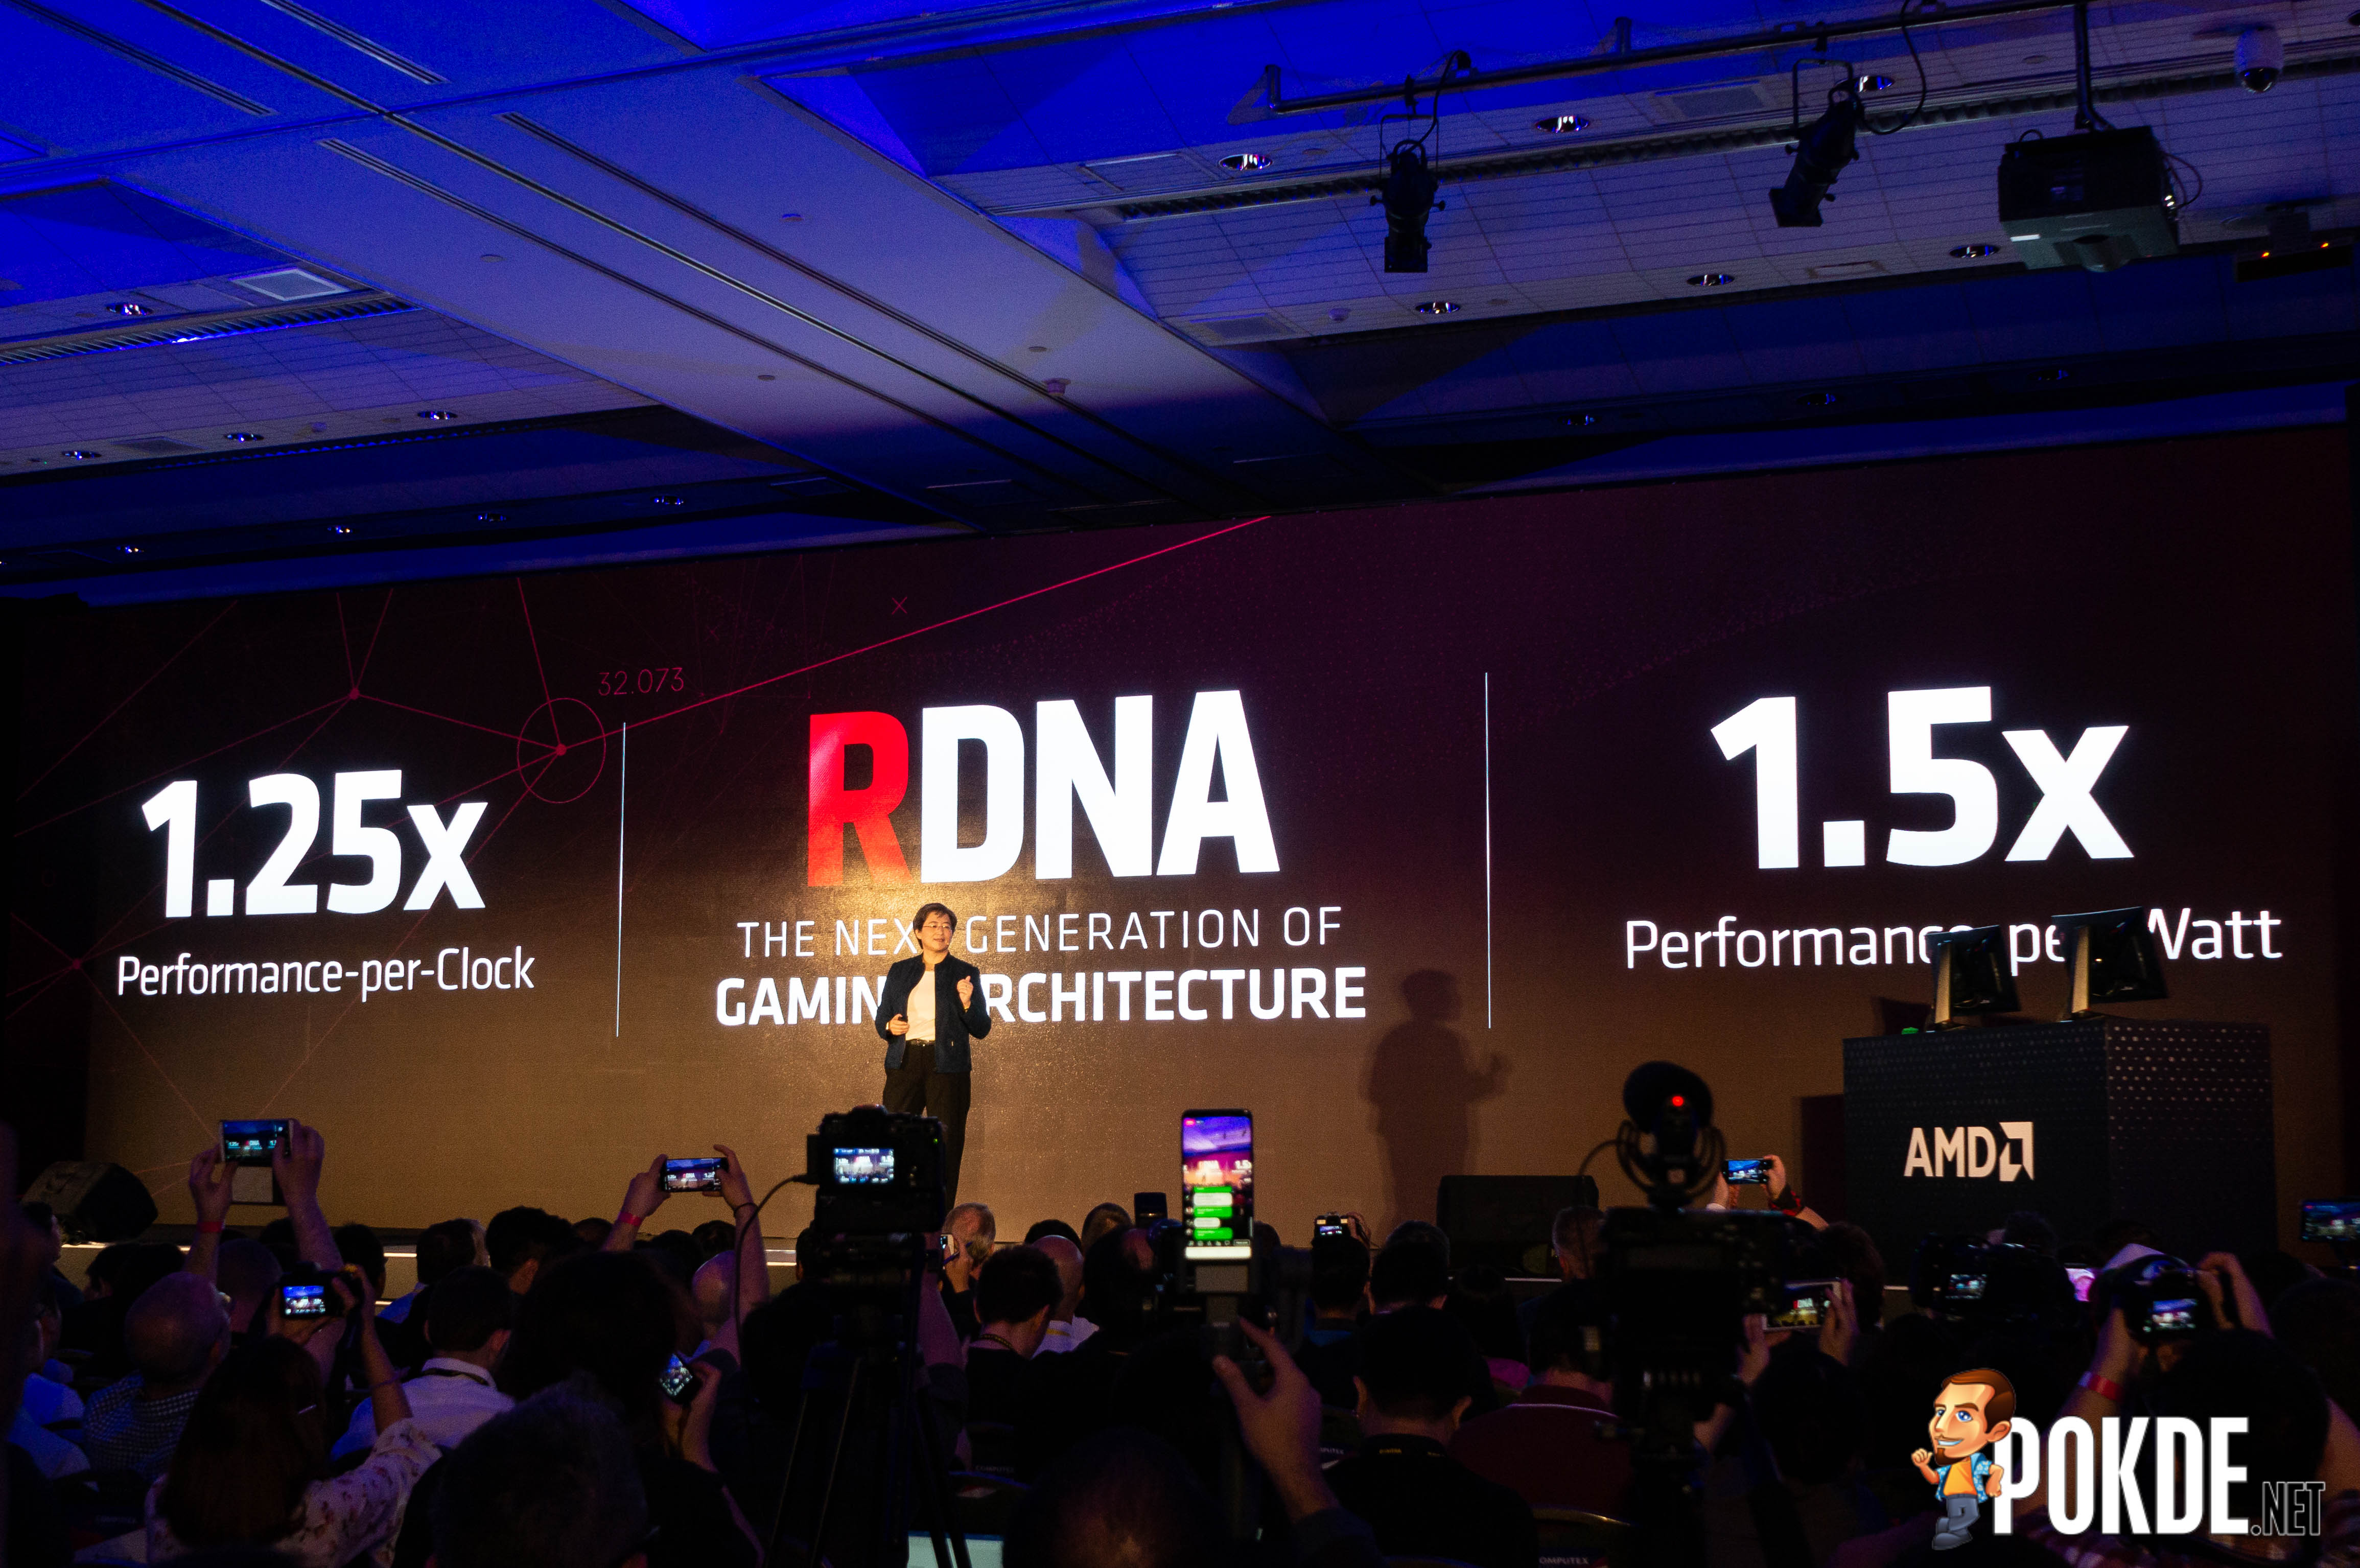 Computex 2019] AMD Radeon RX 5700 to feature AMD Navi with RDNA – Pokde